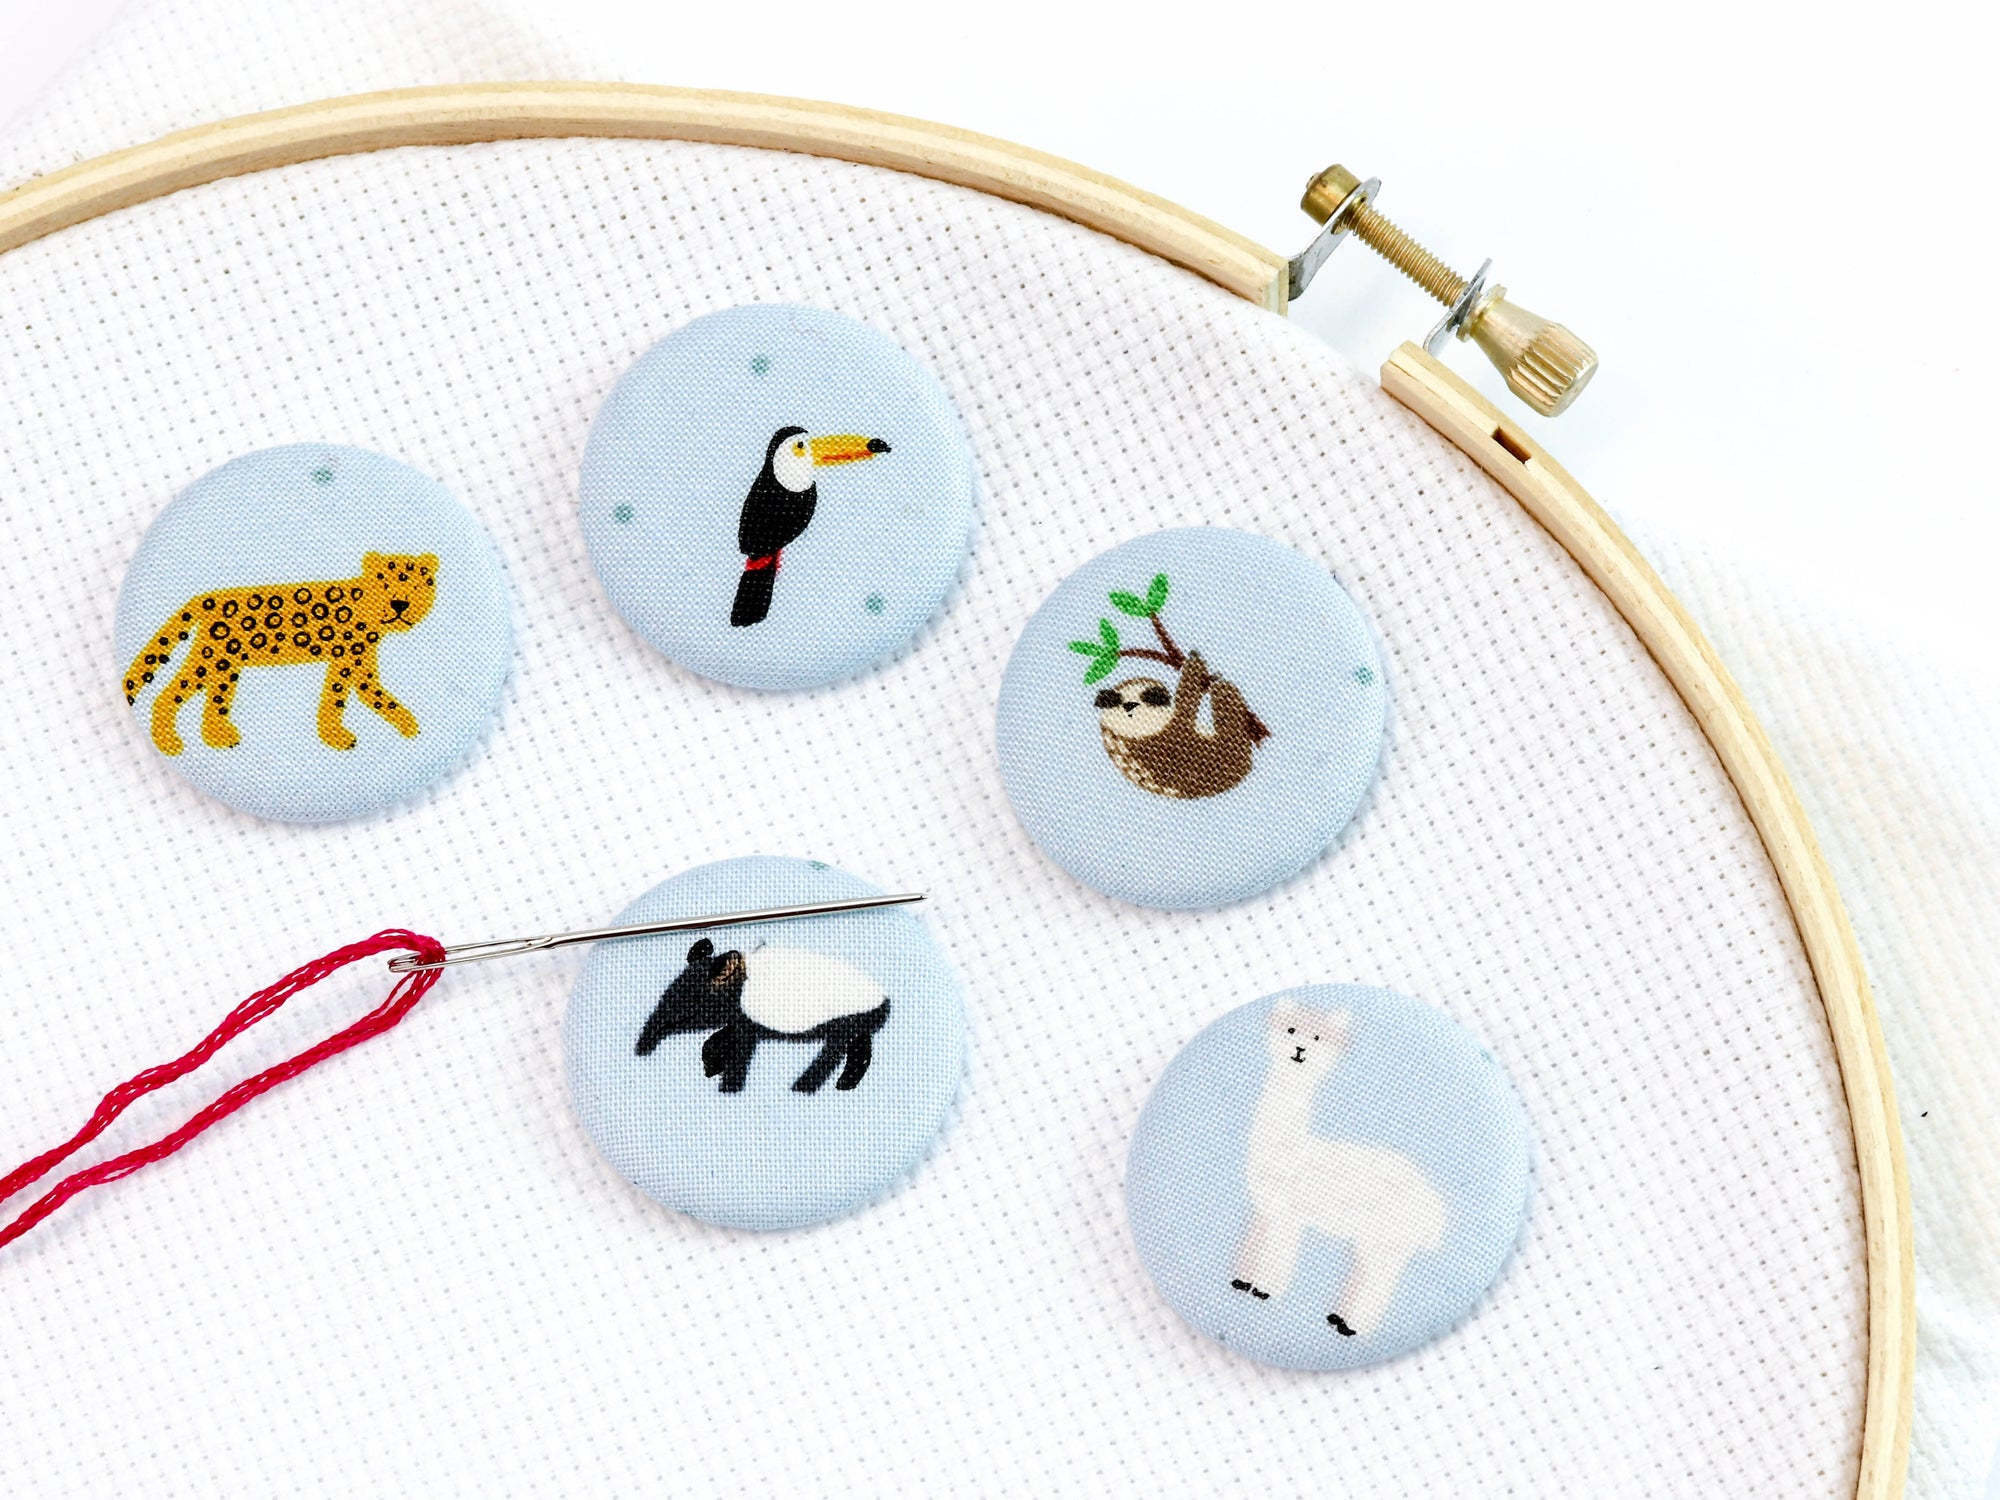 Needle minder: South American Animals on Blue - Fabric Needlekeepers with Strong Ceramic Magnets for Embroidery, Cross Stitch, Crafting